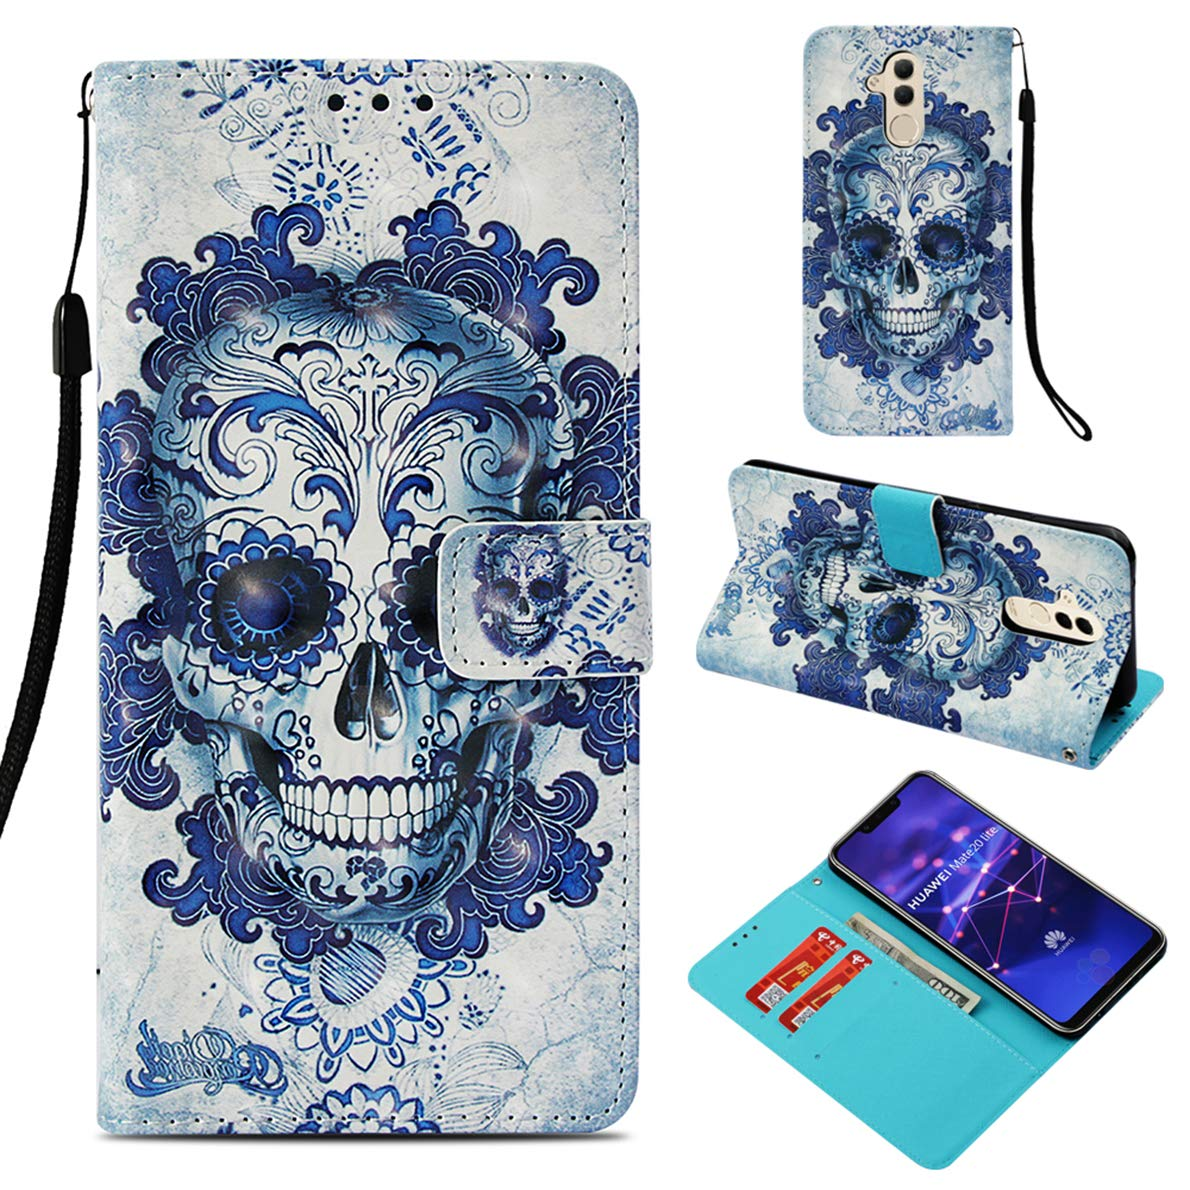 Huawei Mate 20 Lite Case, SHUYIT Butterfly Flower Color Pattern PU Leather Case Book Flip Wallet Case Cover with Card Slots Stand Magnetic Closure Folio Shell Case for Huawei Mate 20 Lite